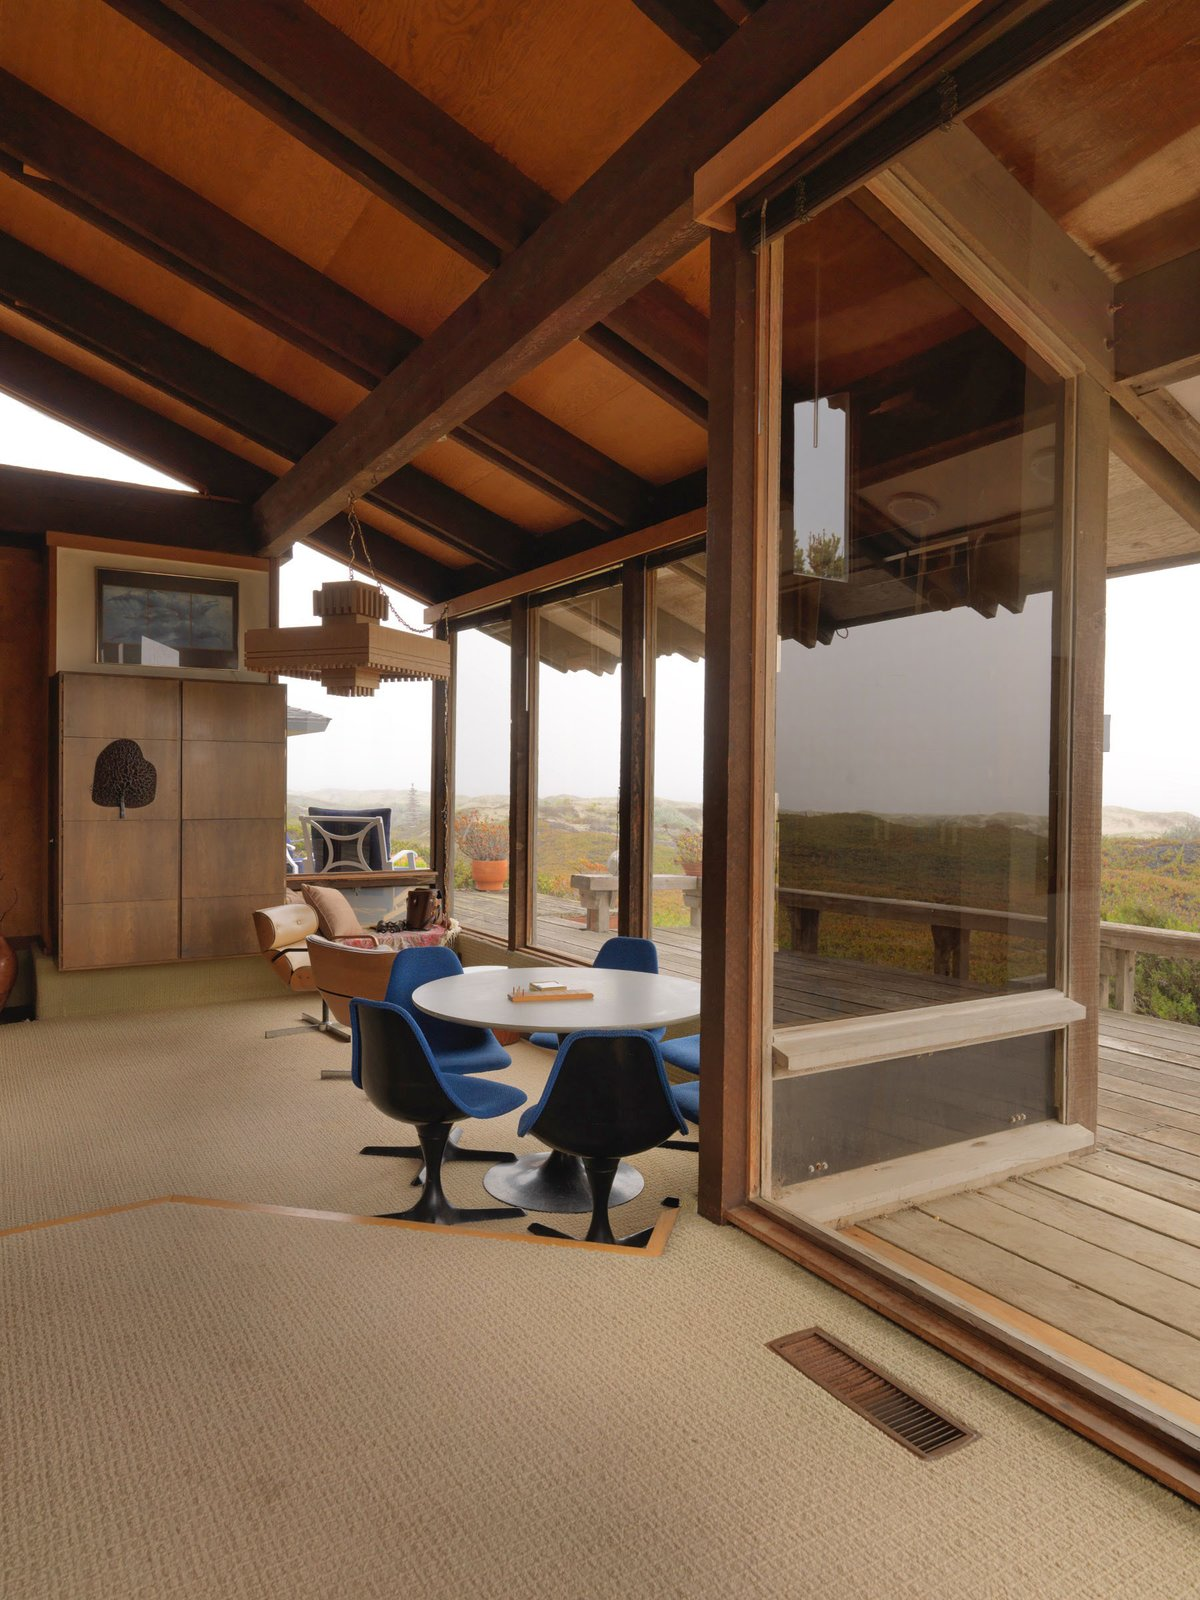 Dining, Chair, Carpet, Pendant, Table, and Storage A  Best Dining Pendant Carpet Photos from A Contemporary Beach Retreat on California's Central Coast Asks $2.3M